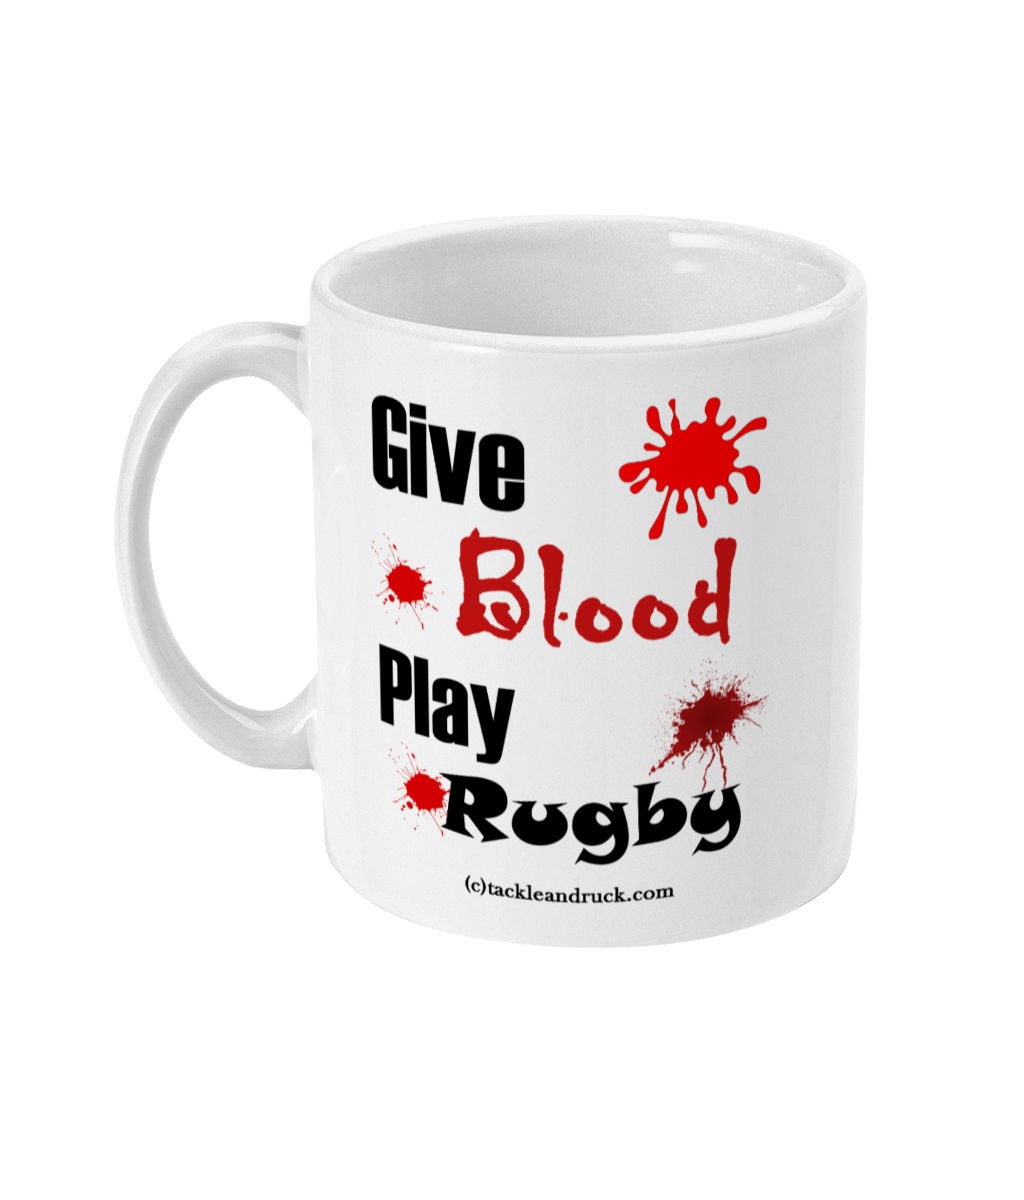 Rugby Mug - Give Blood Play Rugby